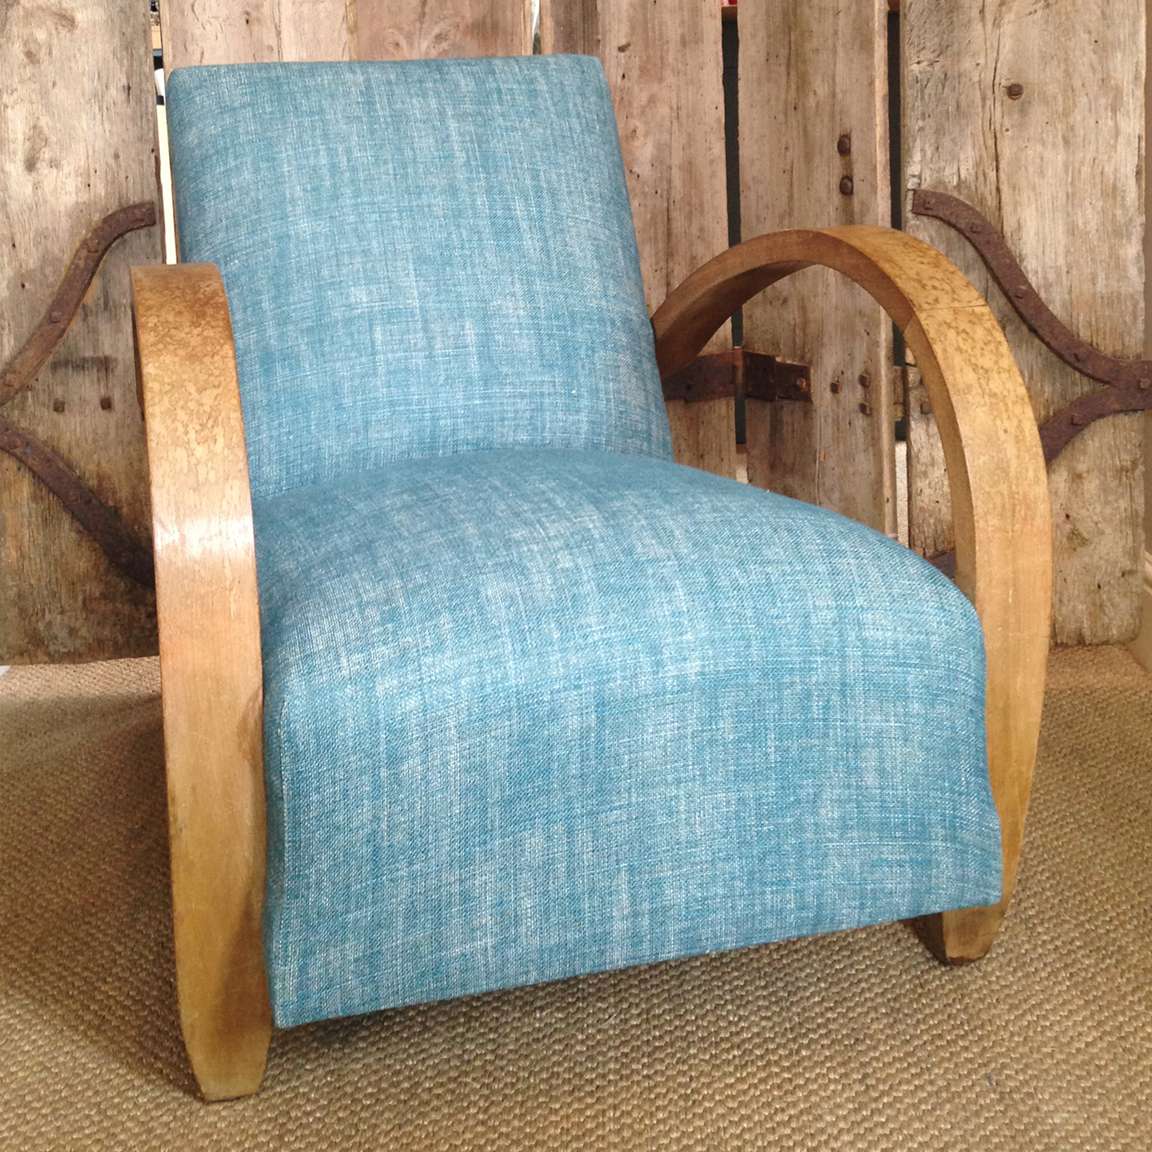 Mid-century French chair reupholstered in Fermoie